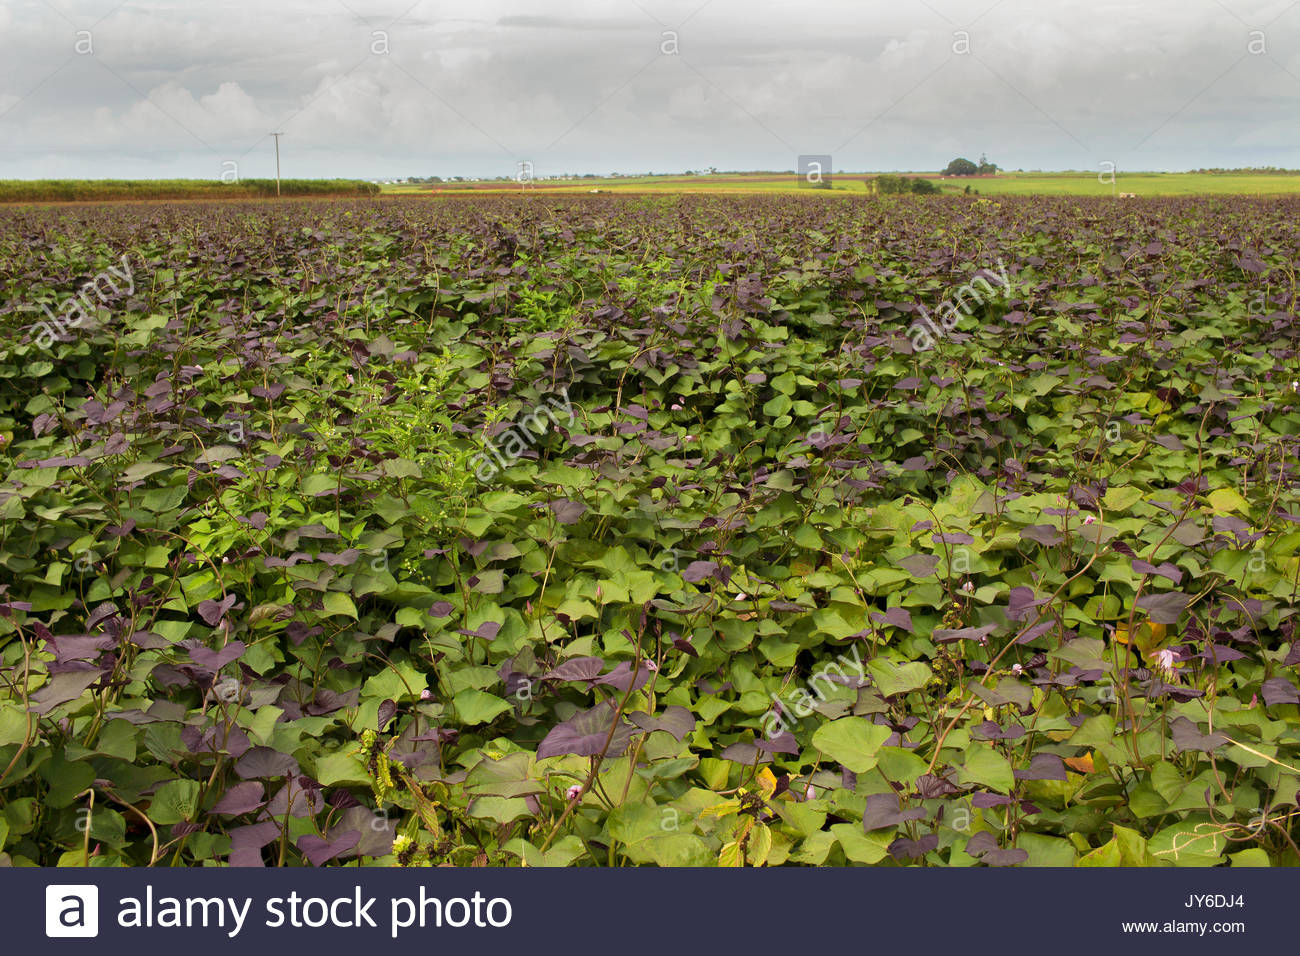 Sweet potato vine with purple leaves. The leaves are reported to contain many health benefits and are eaten as any other green vegetable would be. - Stock Image